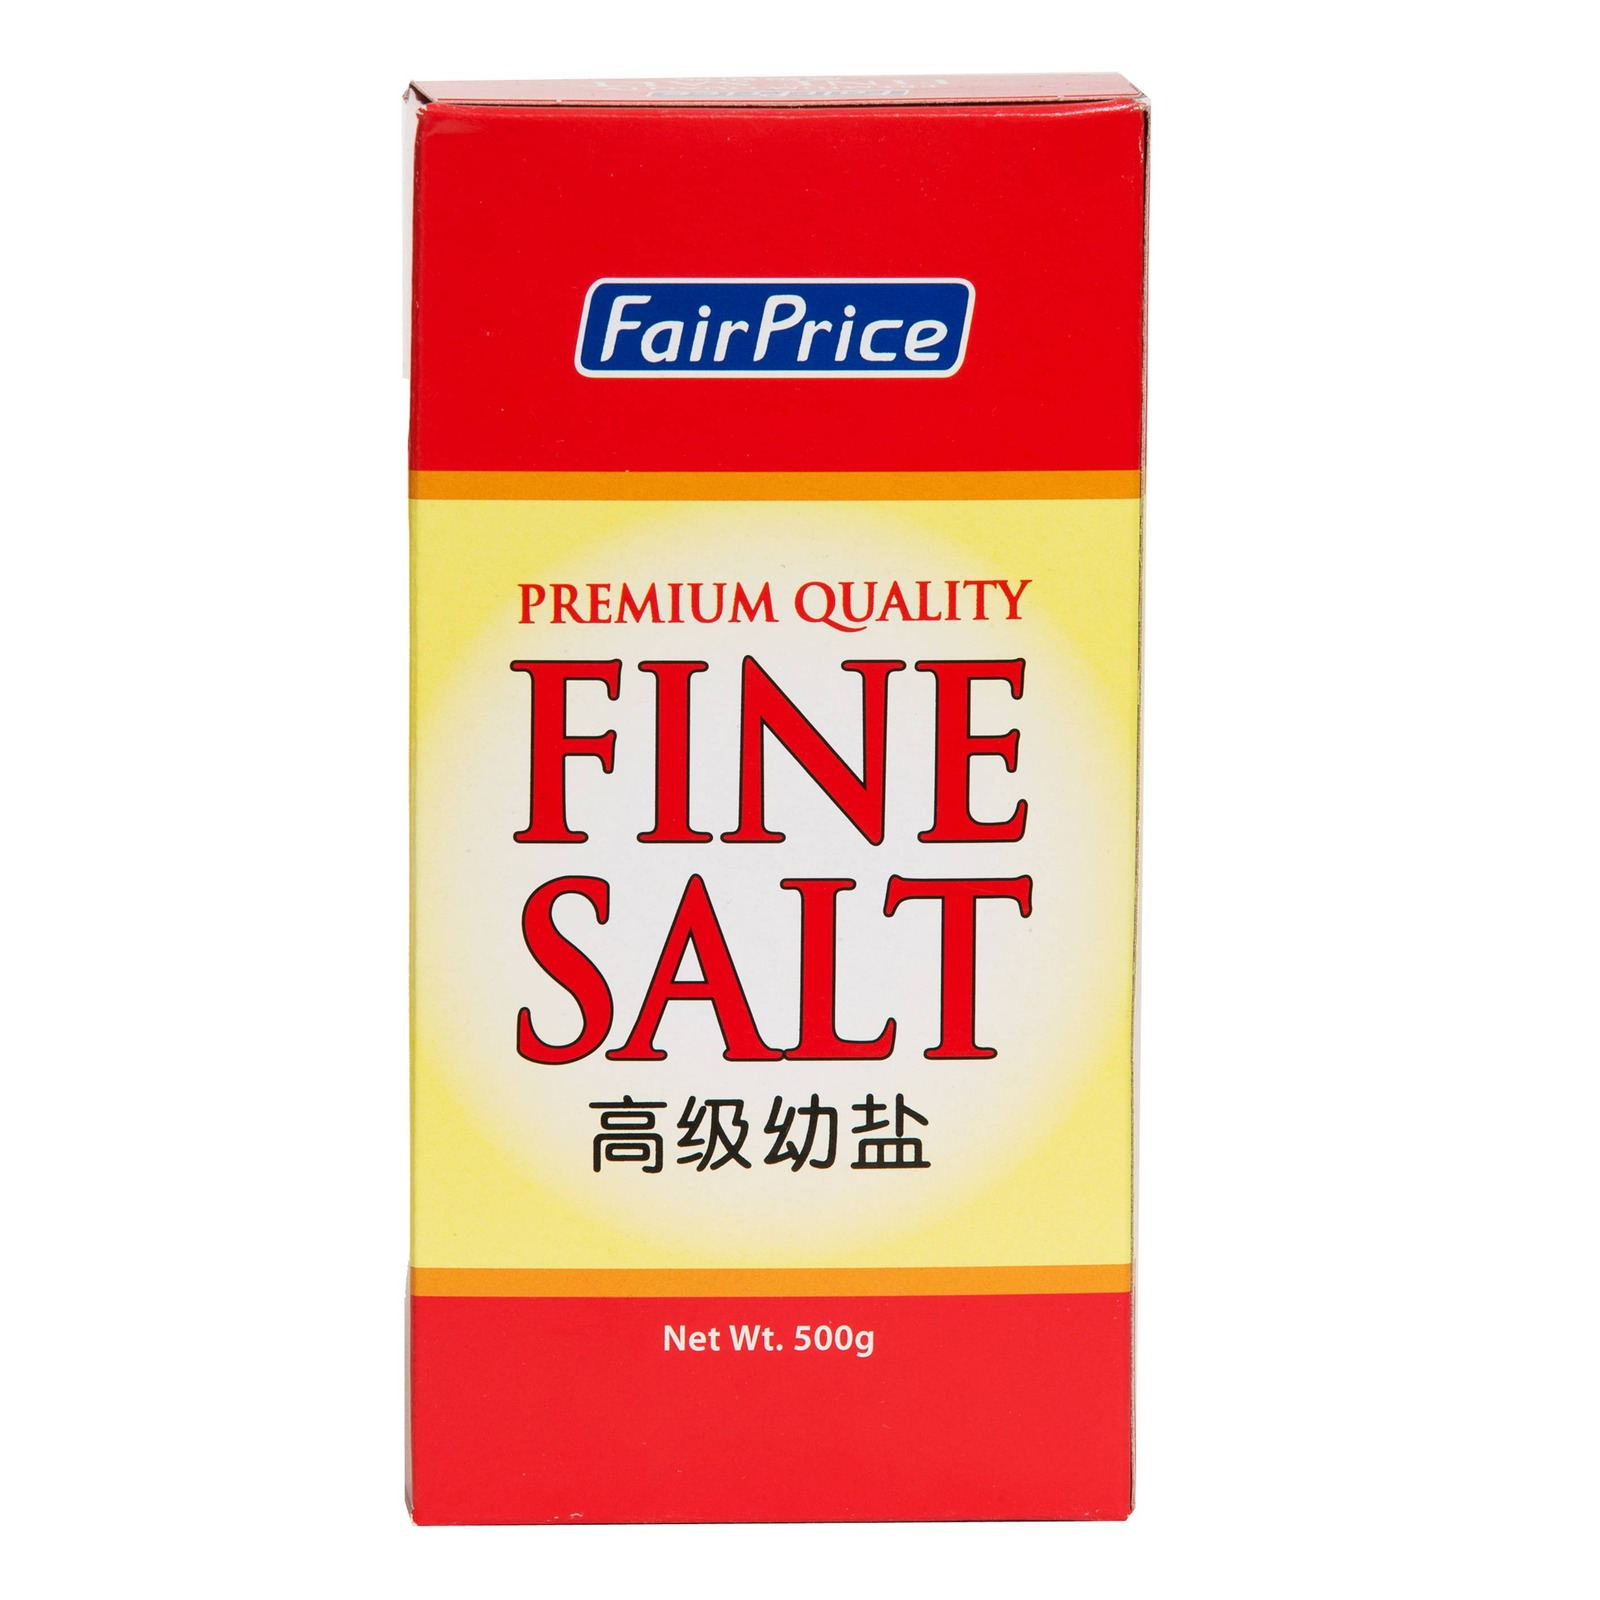 FairPrice Premium Quality Fine Salt Box